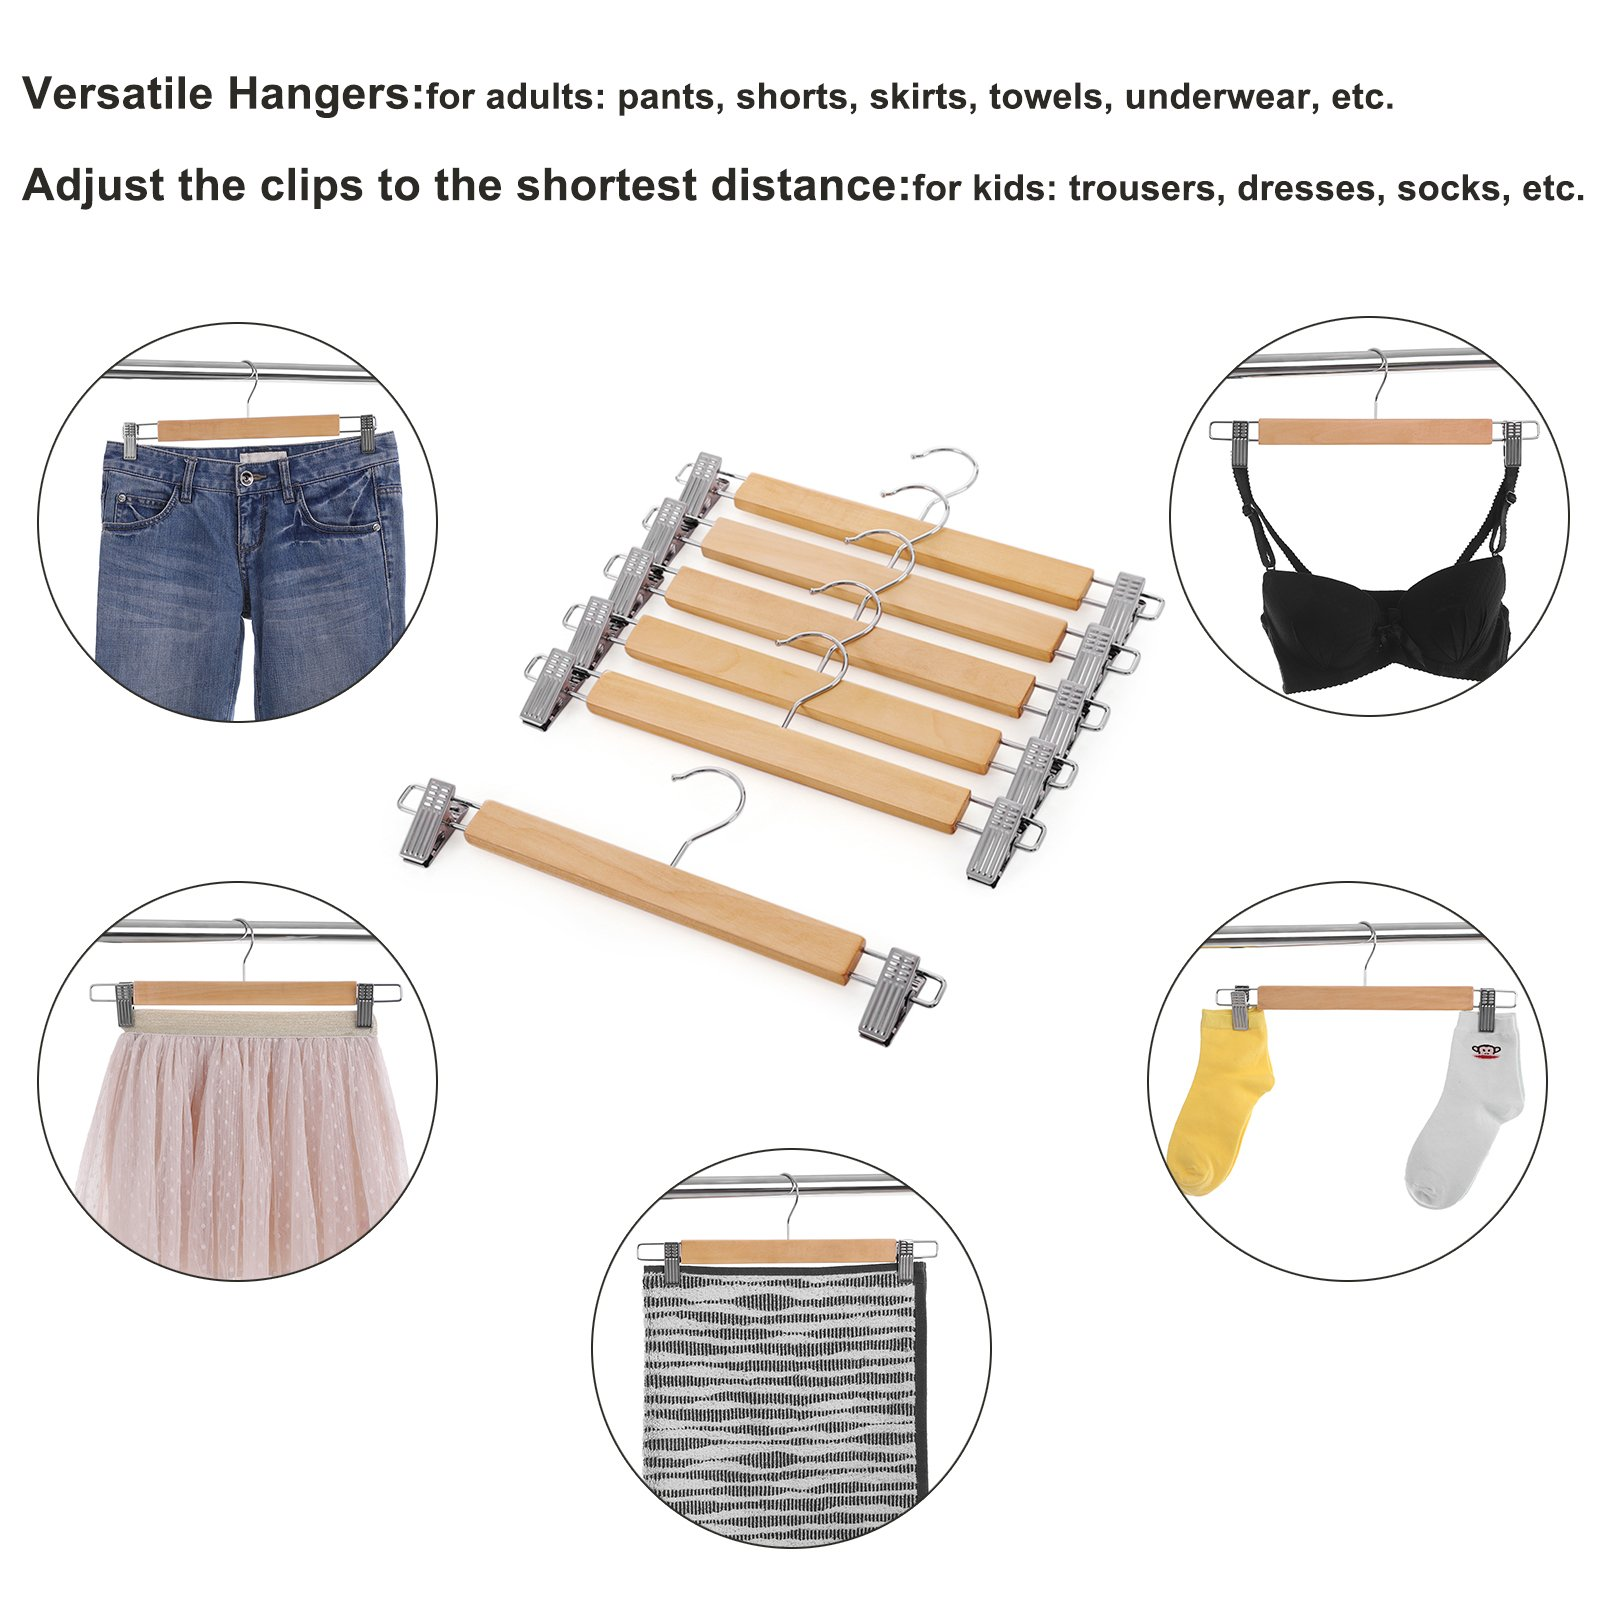 SONGMICS Hangers - Wood Pants Hangers 12 Pack Adjustable Anti-Rust Metal Clips (10.8'' - 13.0''), Perfect Skirts Pants Slacks Natural Grain UCRW008-12 by SONGMICS (Image #5)